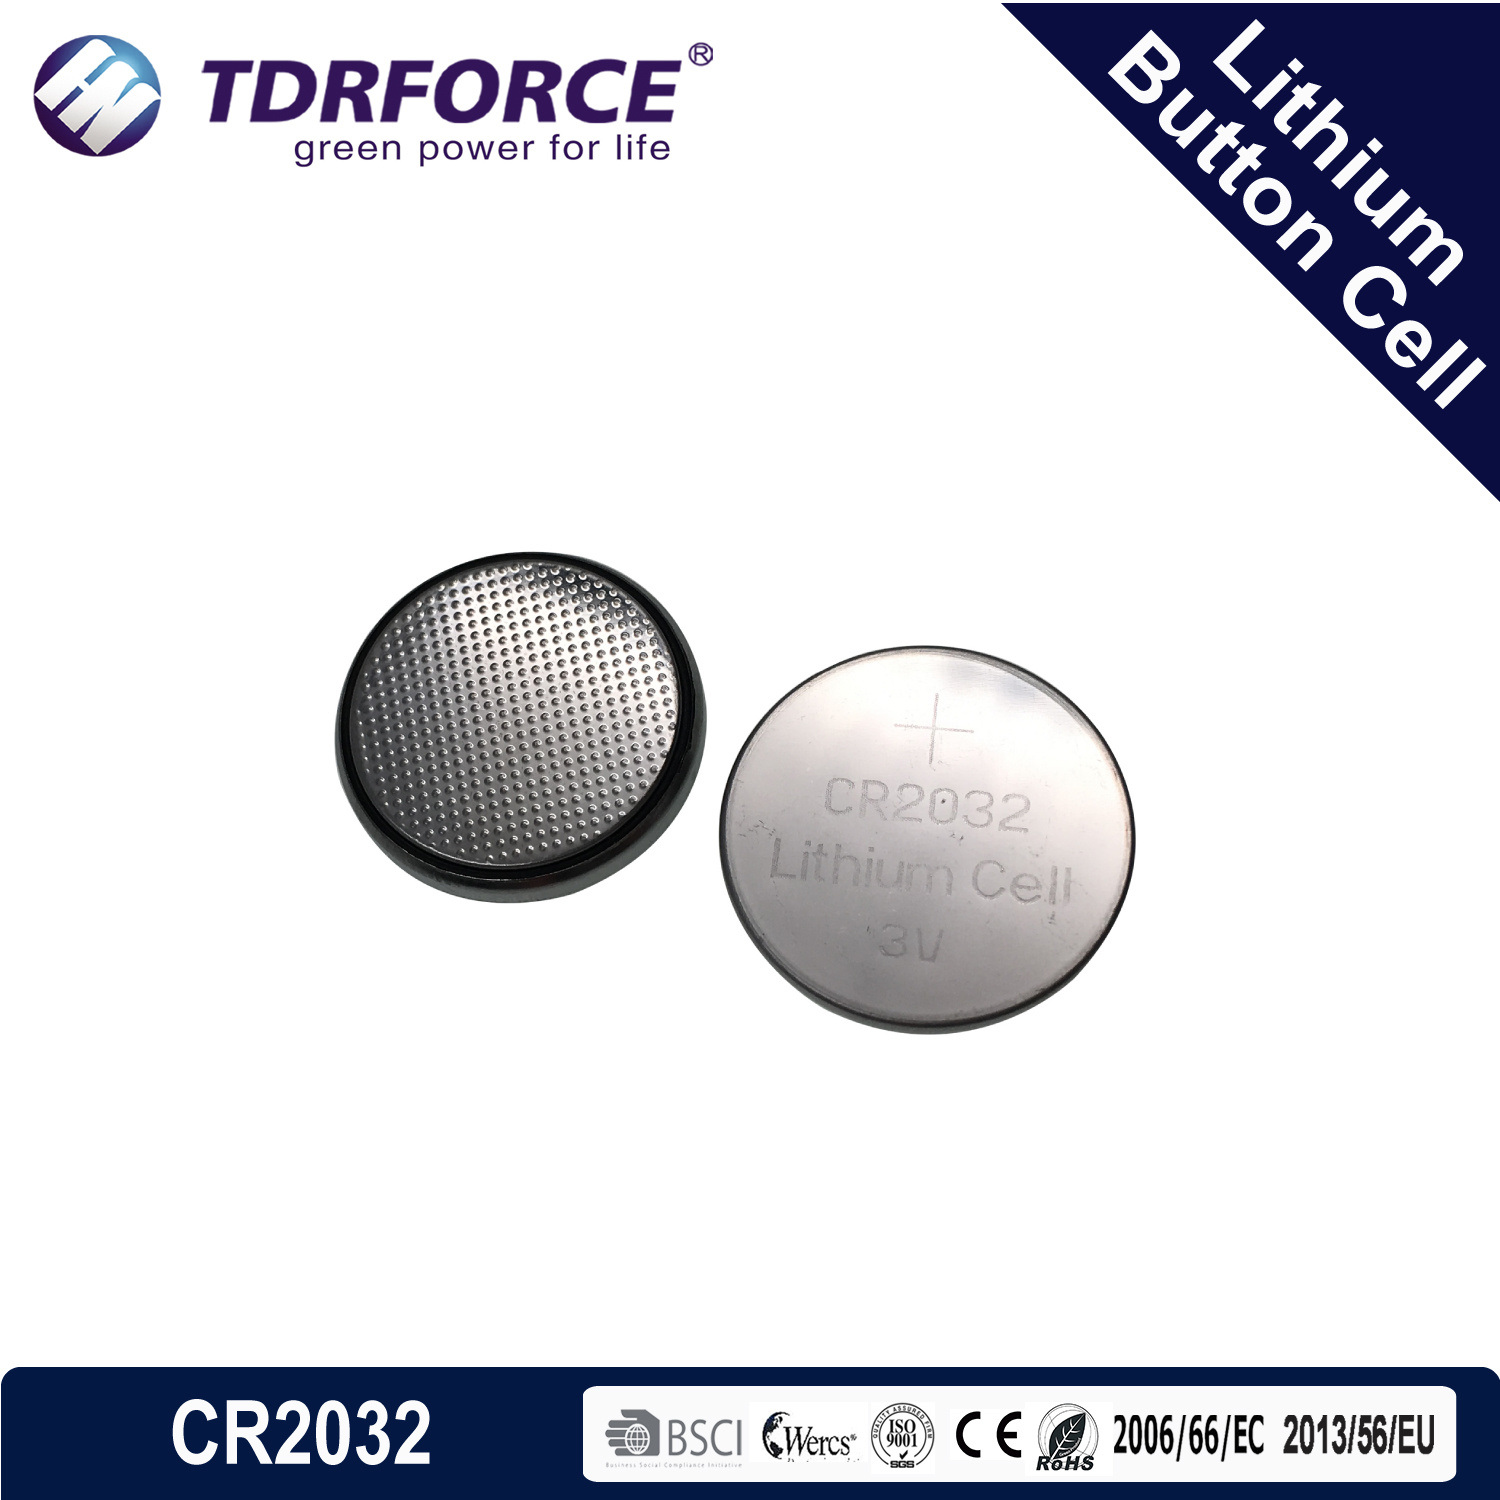 CR3032 to CR2032 Battery Adapter